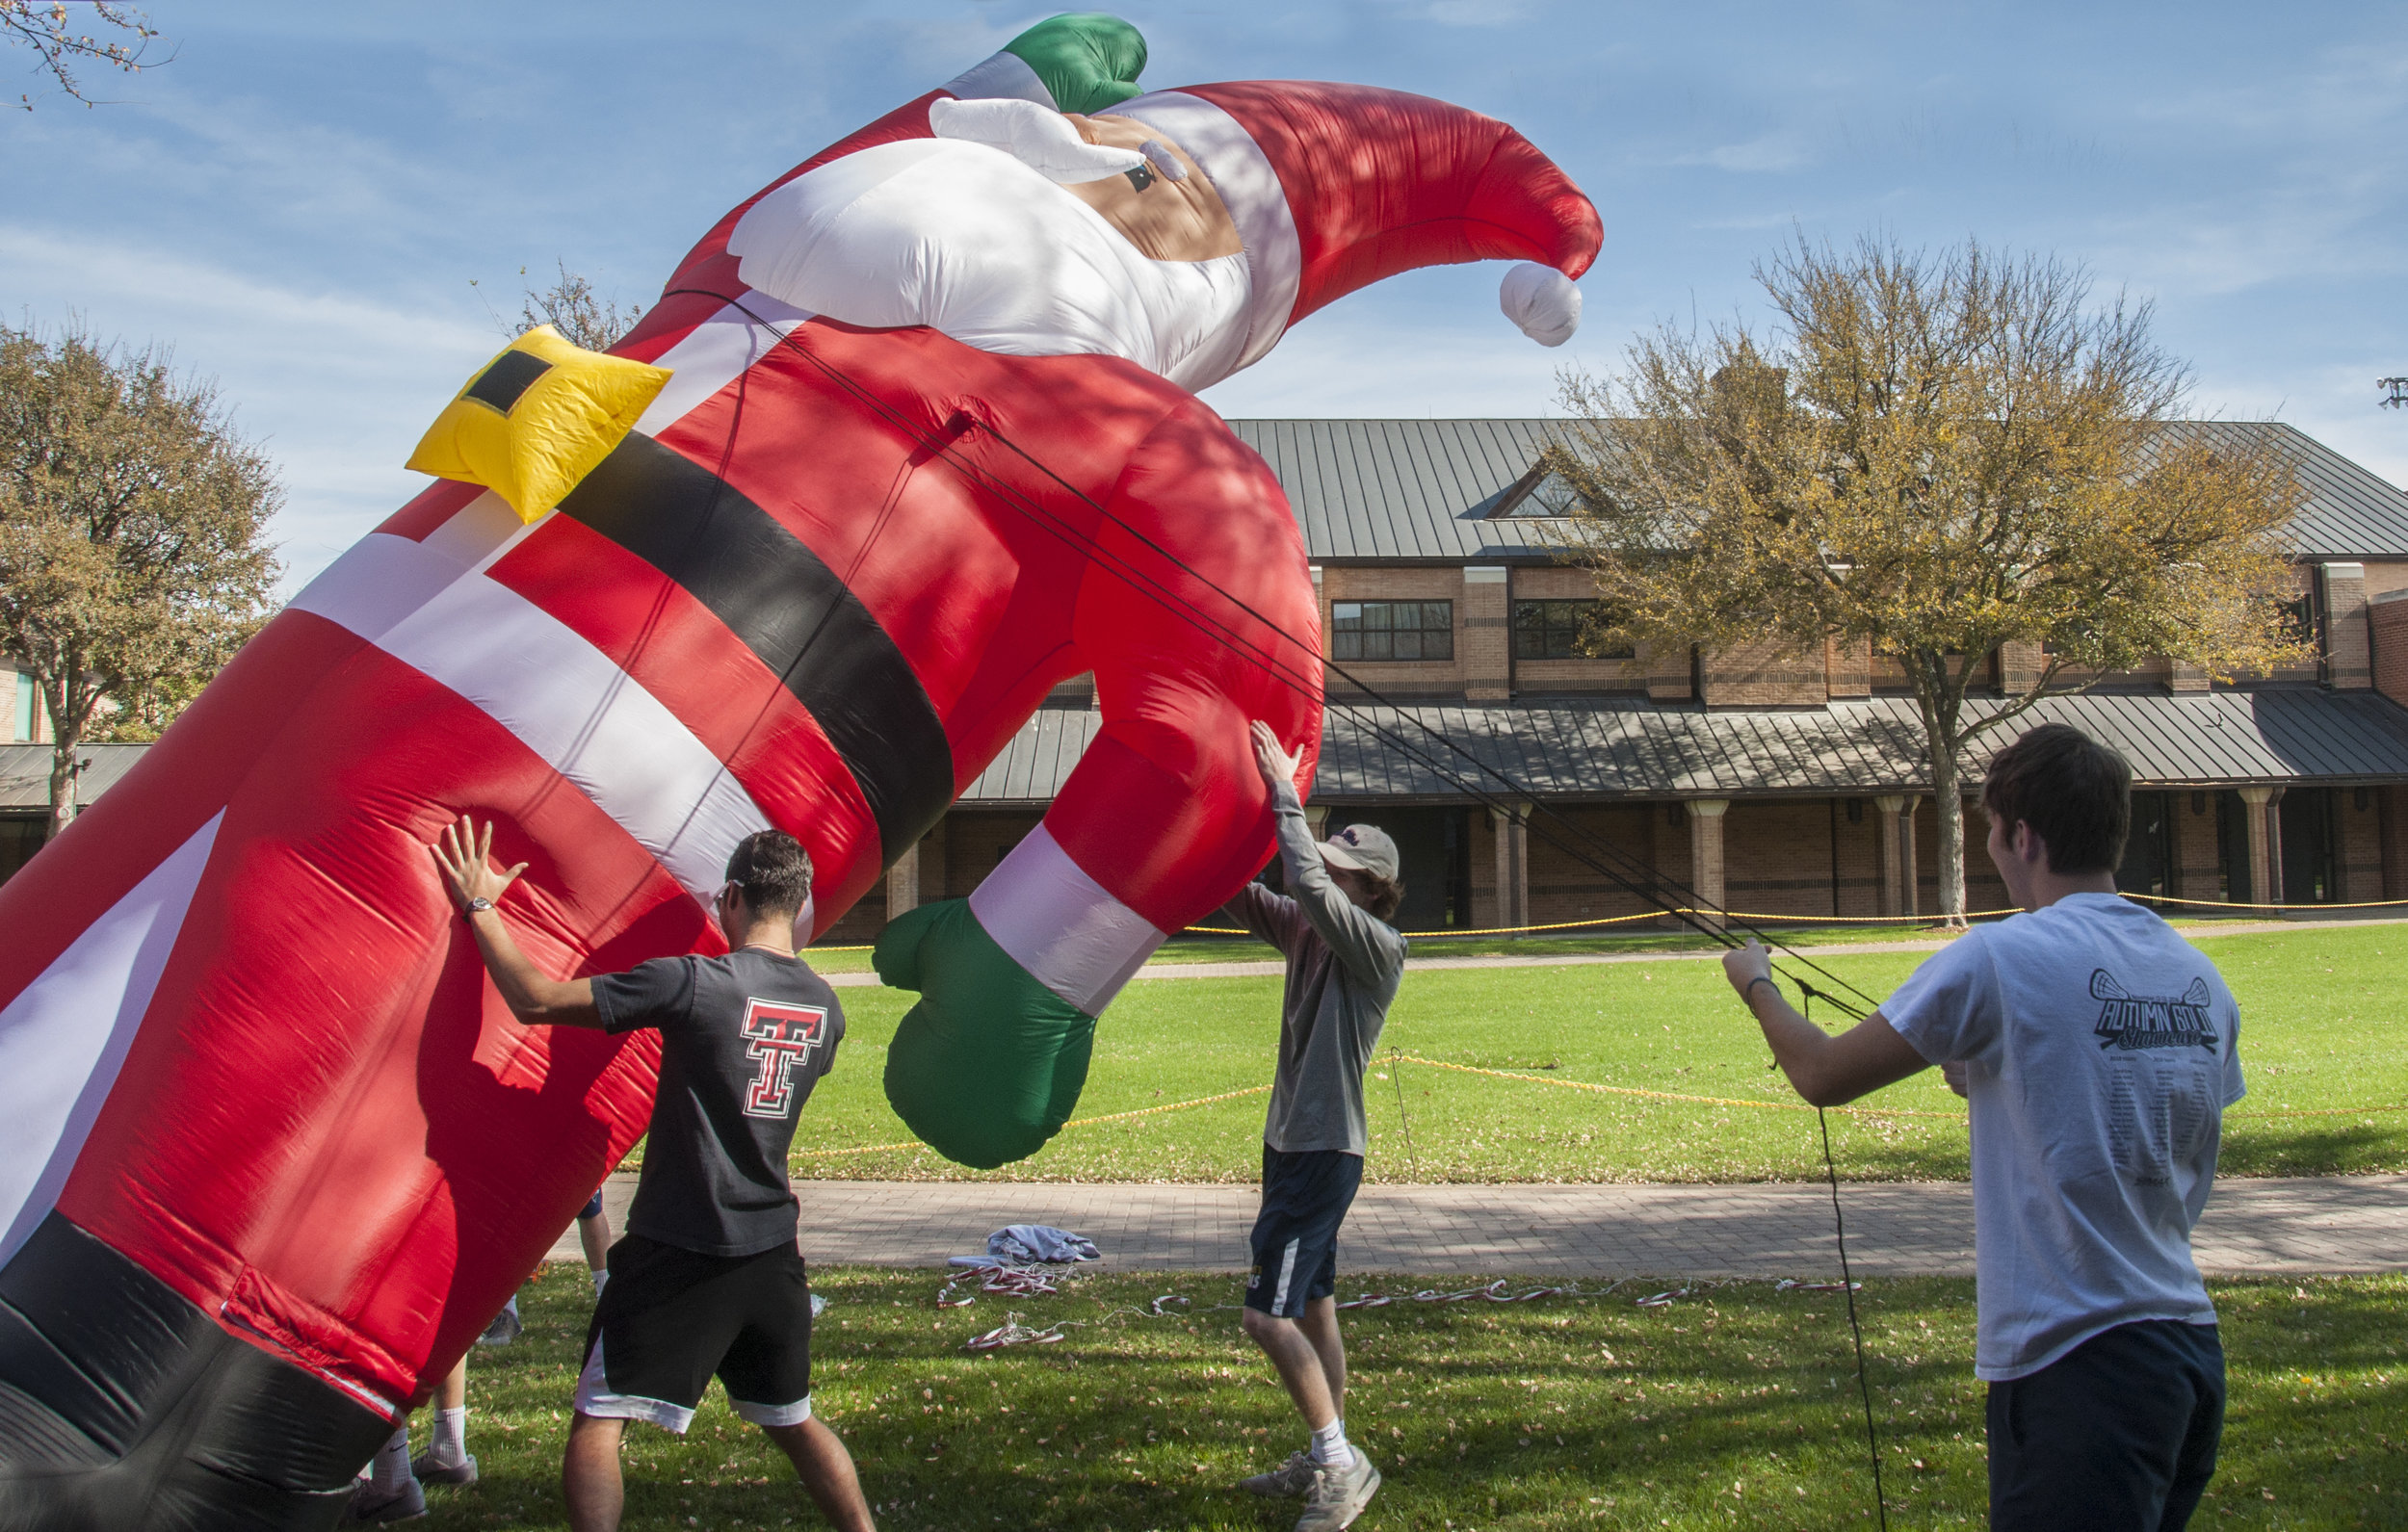 """The giant Santa inflatable was a new addition to the decorations this year,"" senior Matt Freeman said. ""It was really hard to set up, but I'm so excited to see what people say when they see it in the middle of campus."""